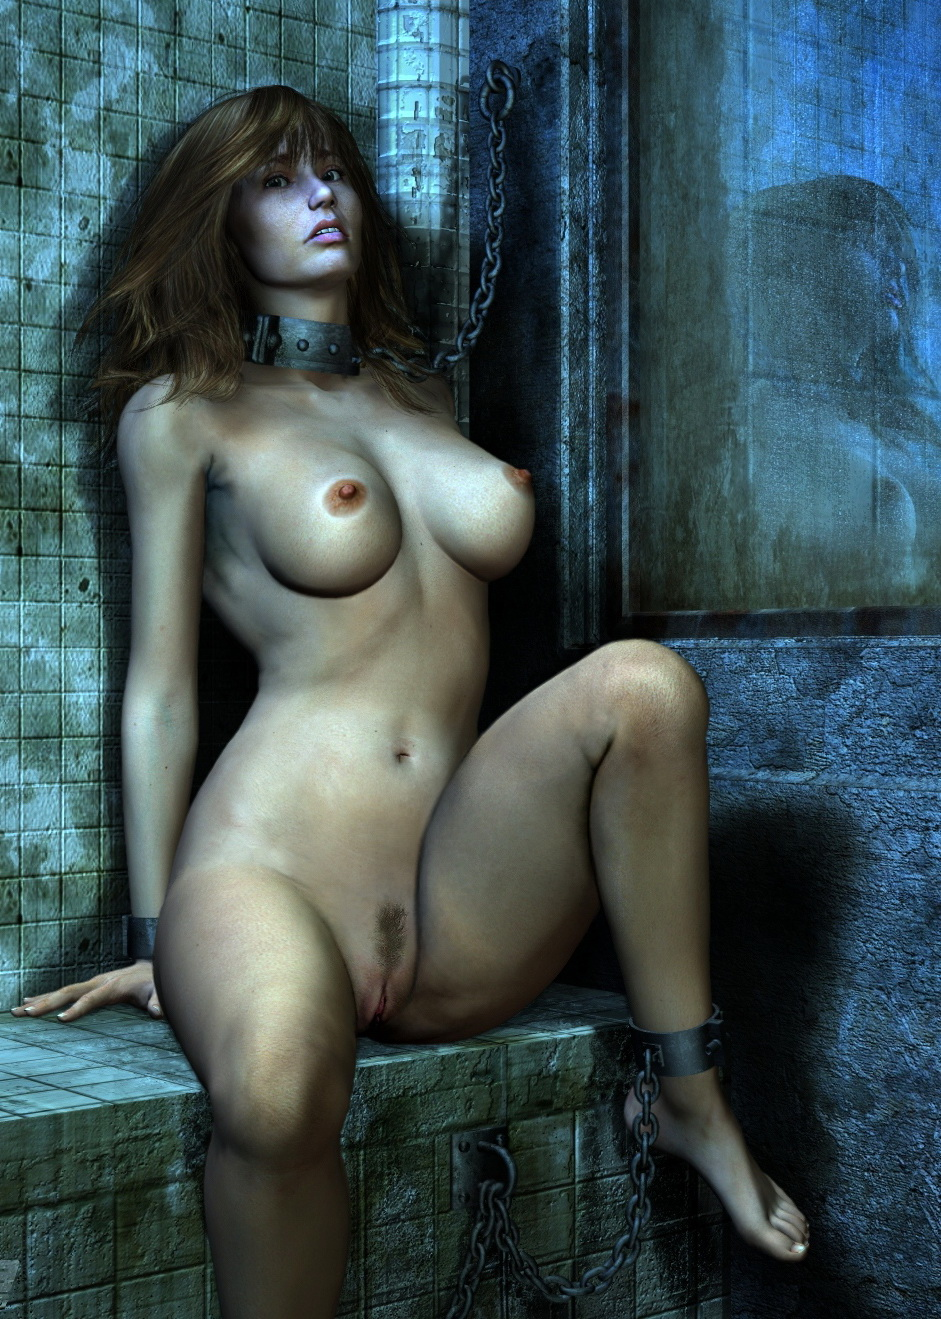 Nude female torture porno comics